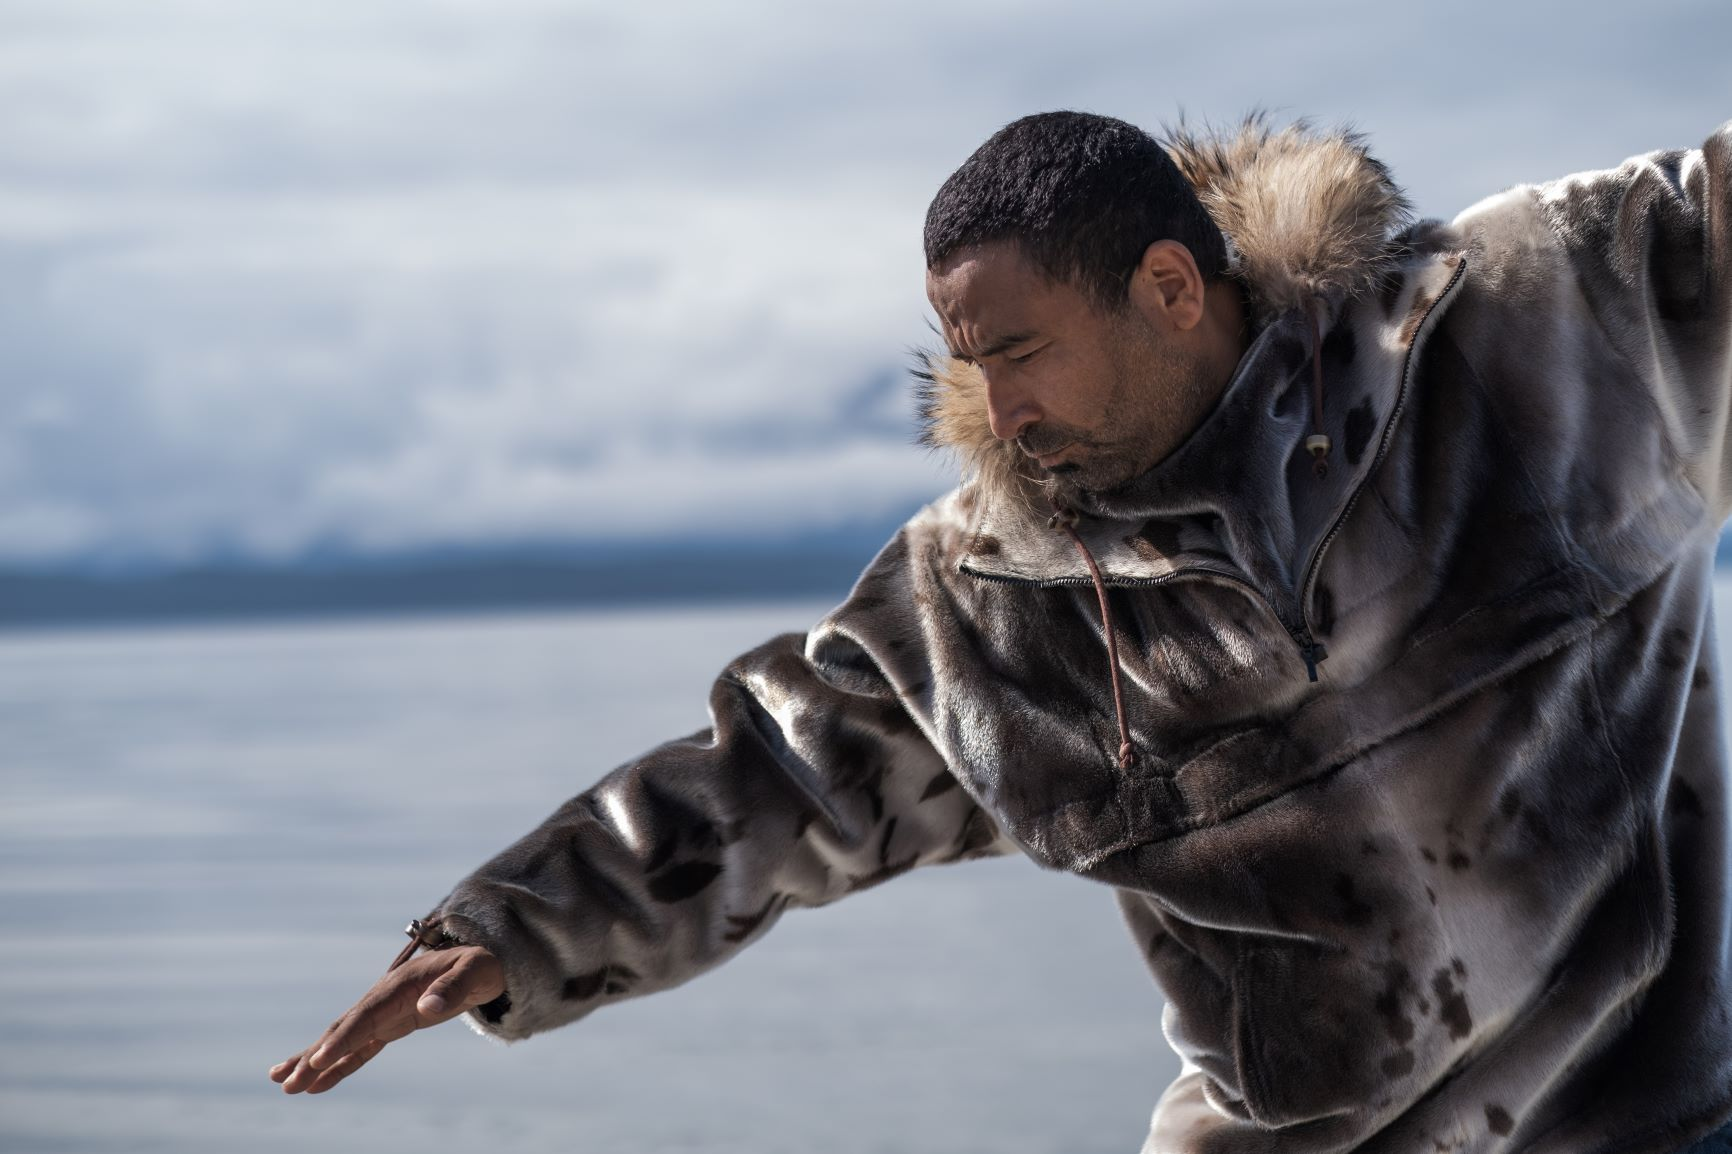 Man wearing seal-skin coat points arm with palm downward with body of water in background